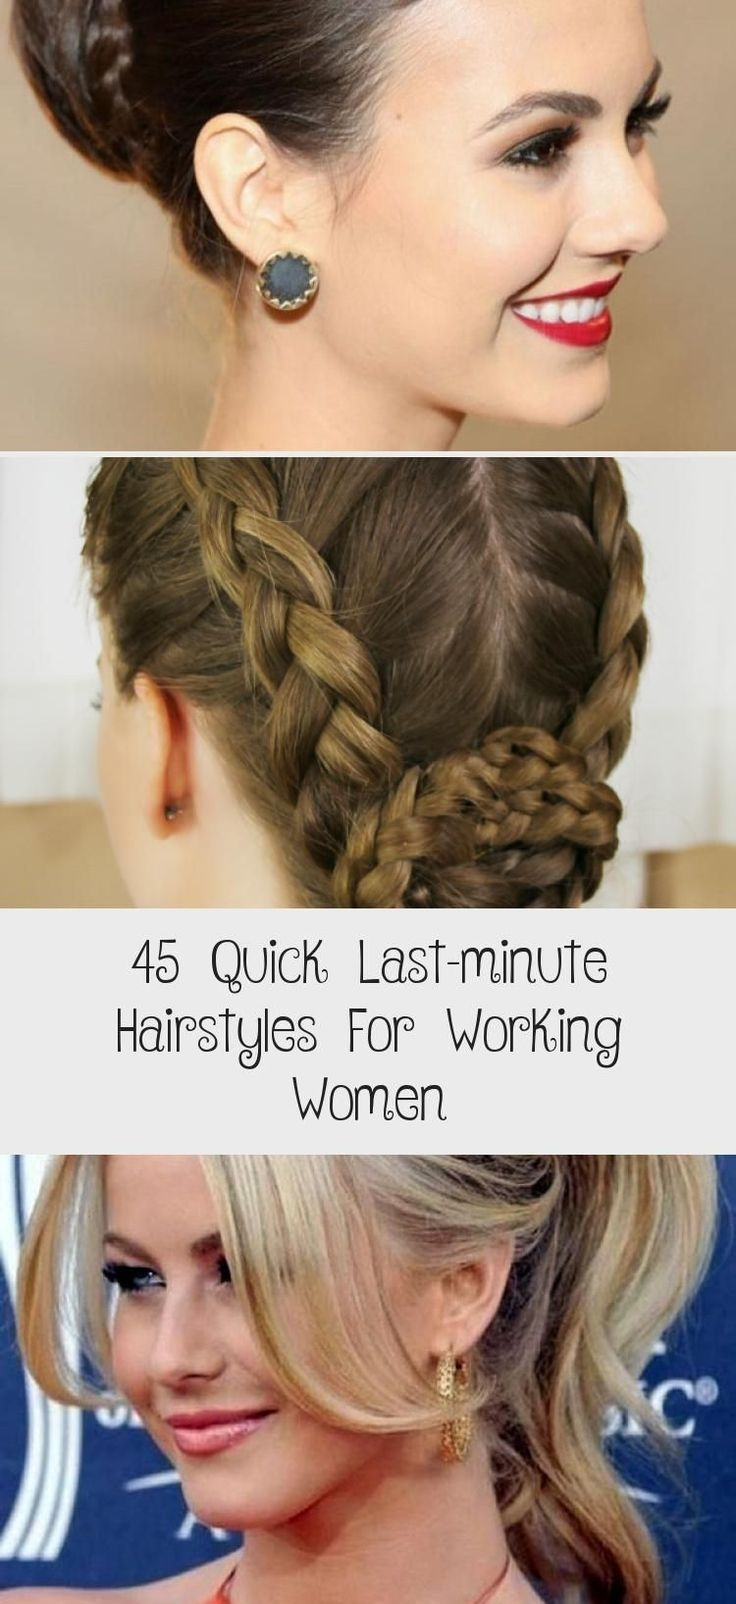 45 Quick Last minute Hairstyles For Working Women ...